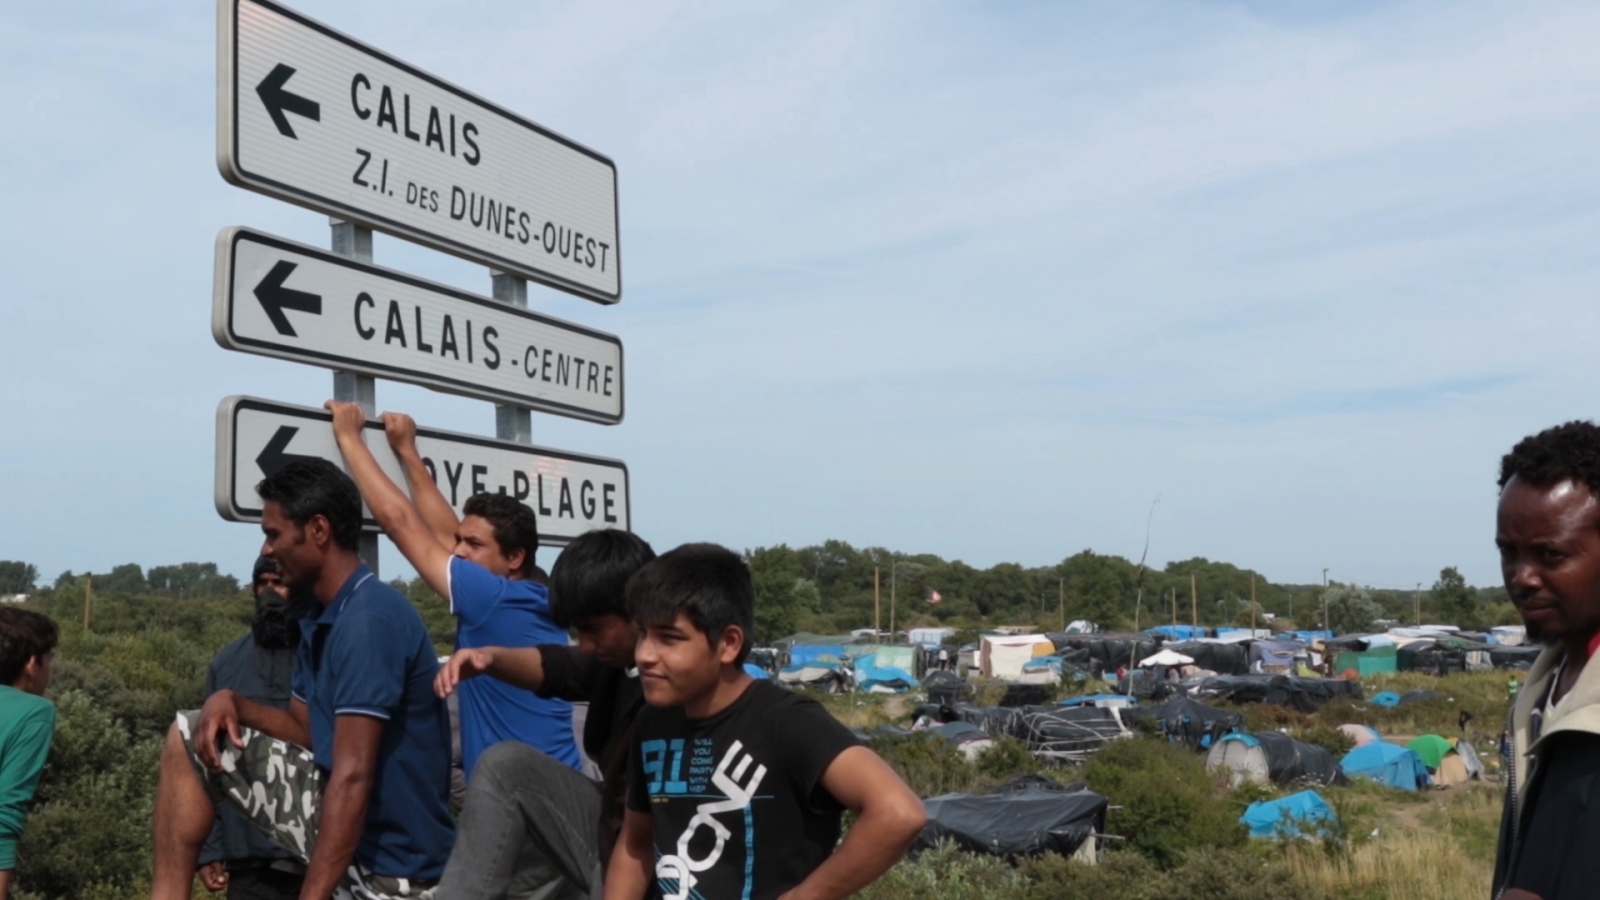 Migrant camps in Calais